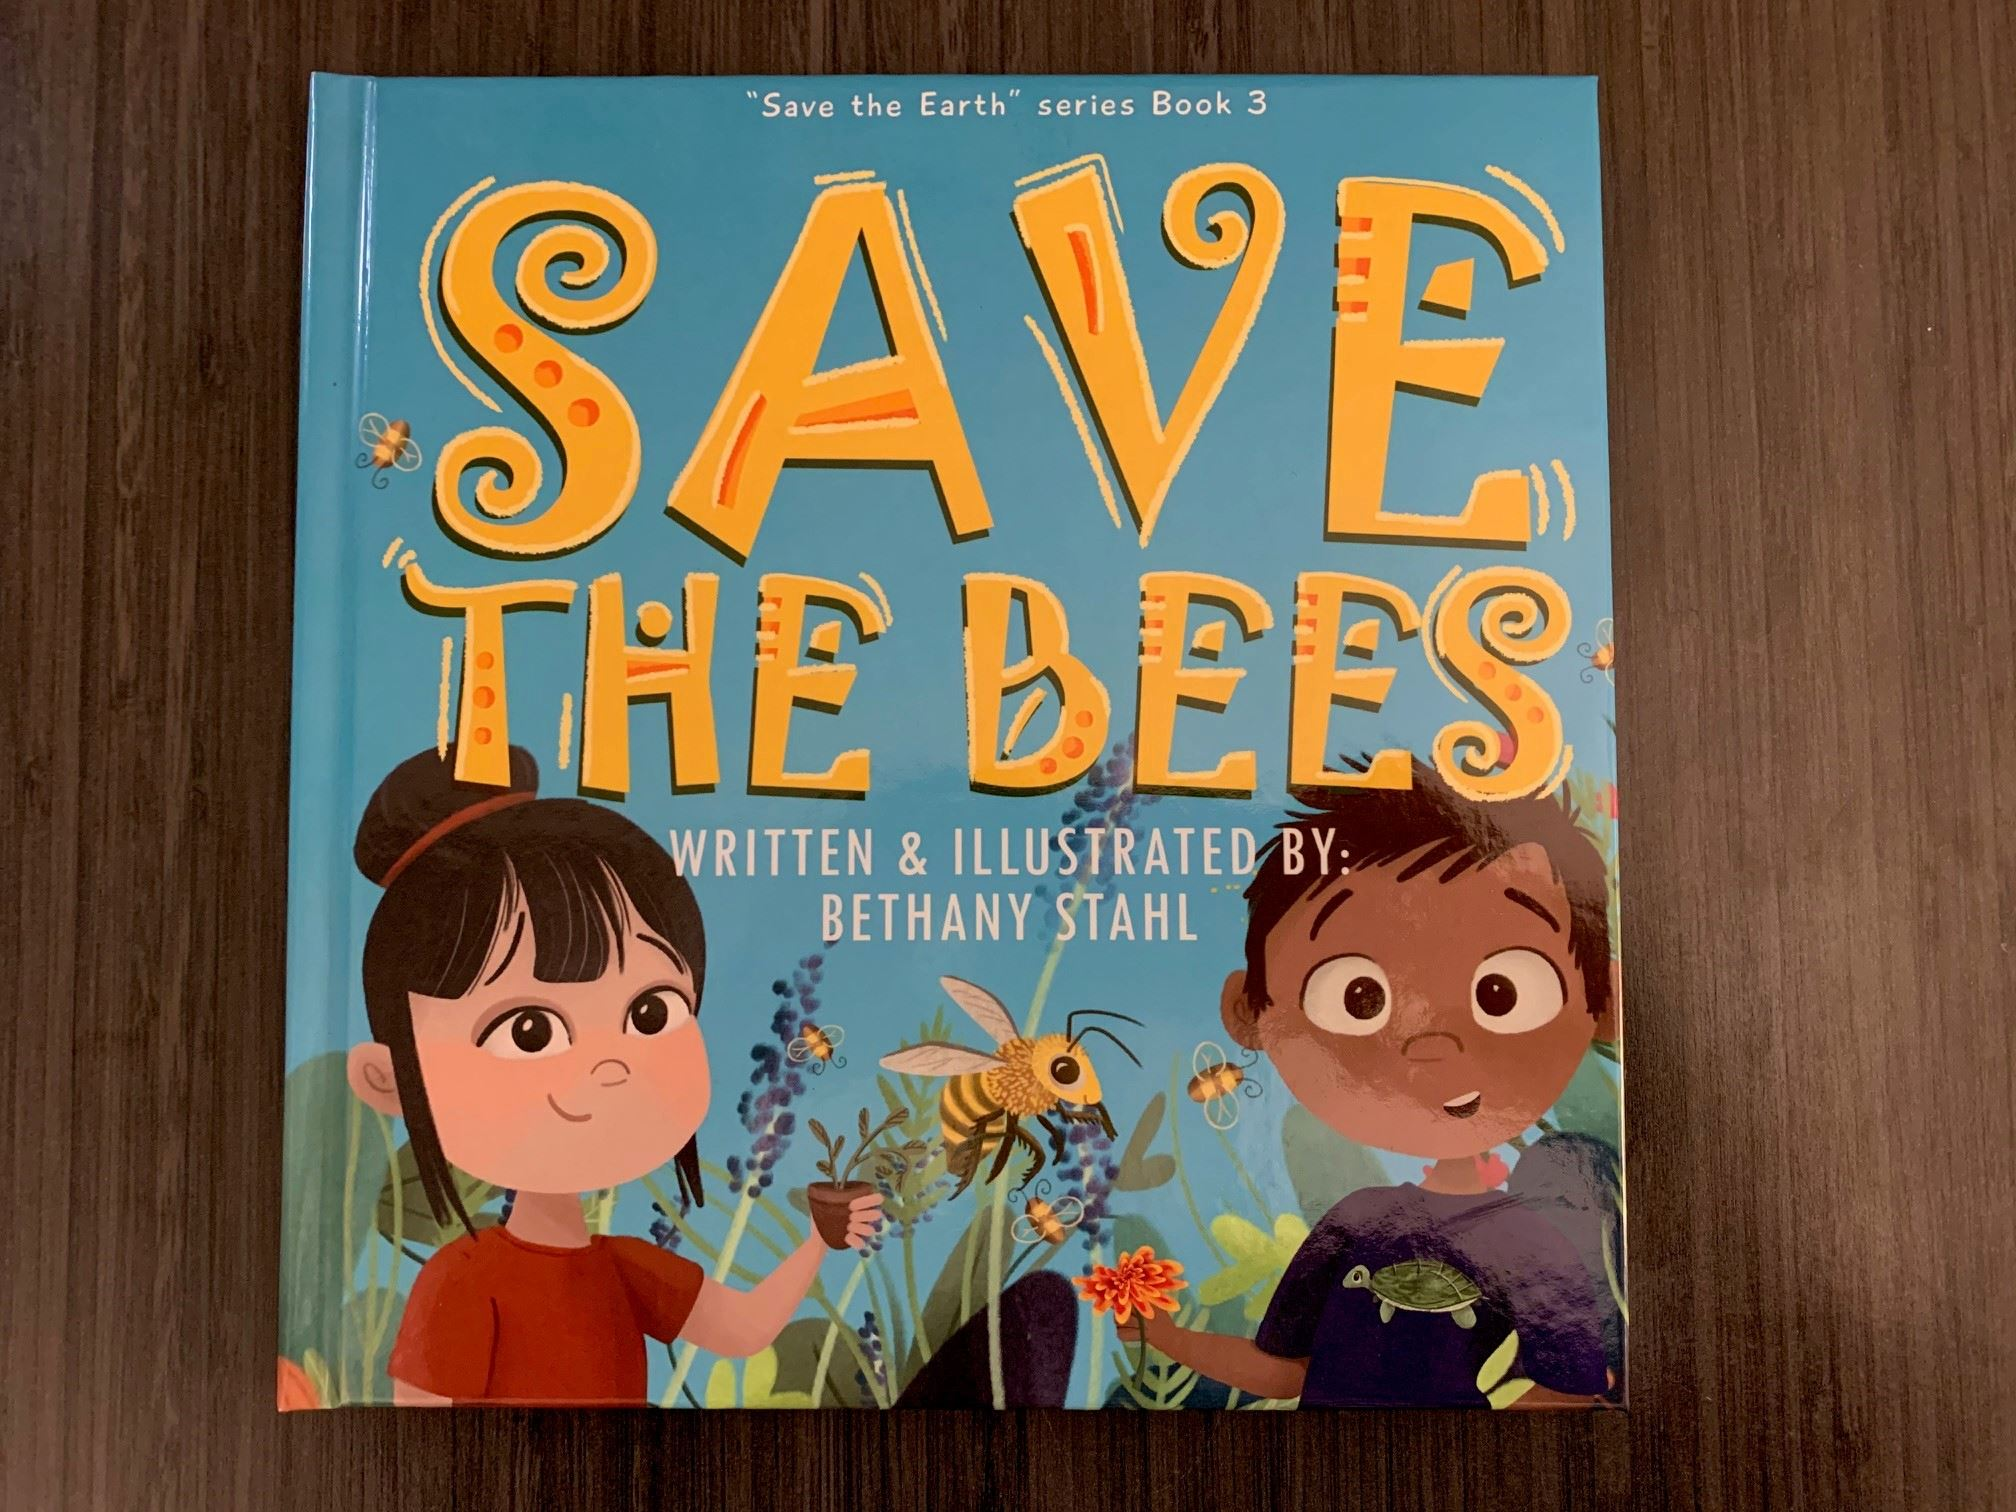 Book 4 - Save The Bees